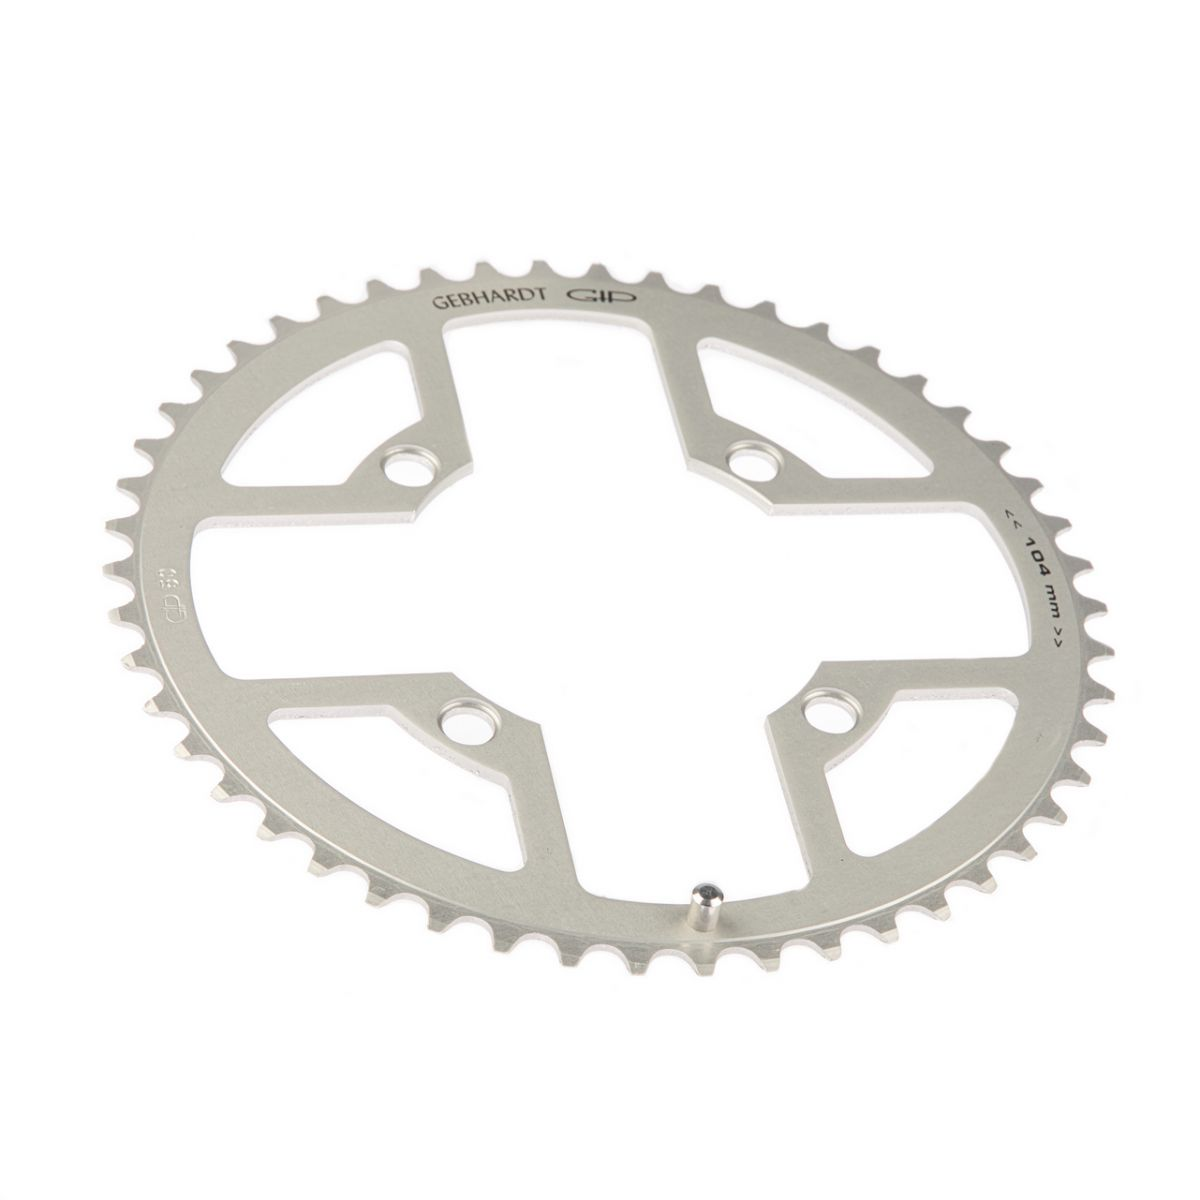 gebhardt chainring classic bcd 104 mm 4hole 40t silver